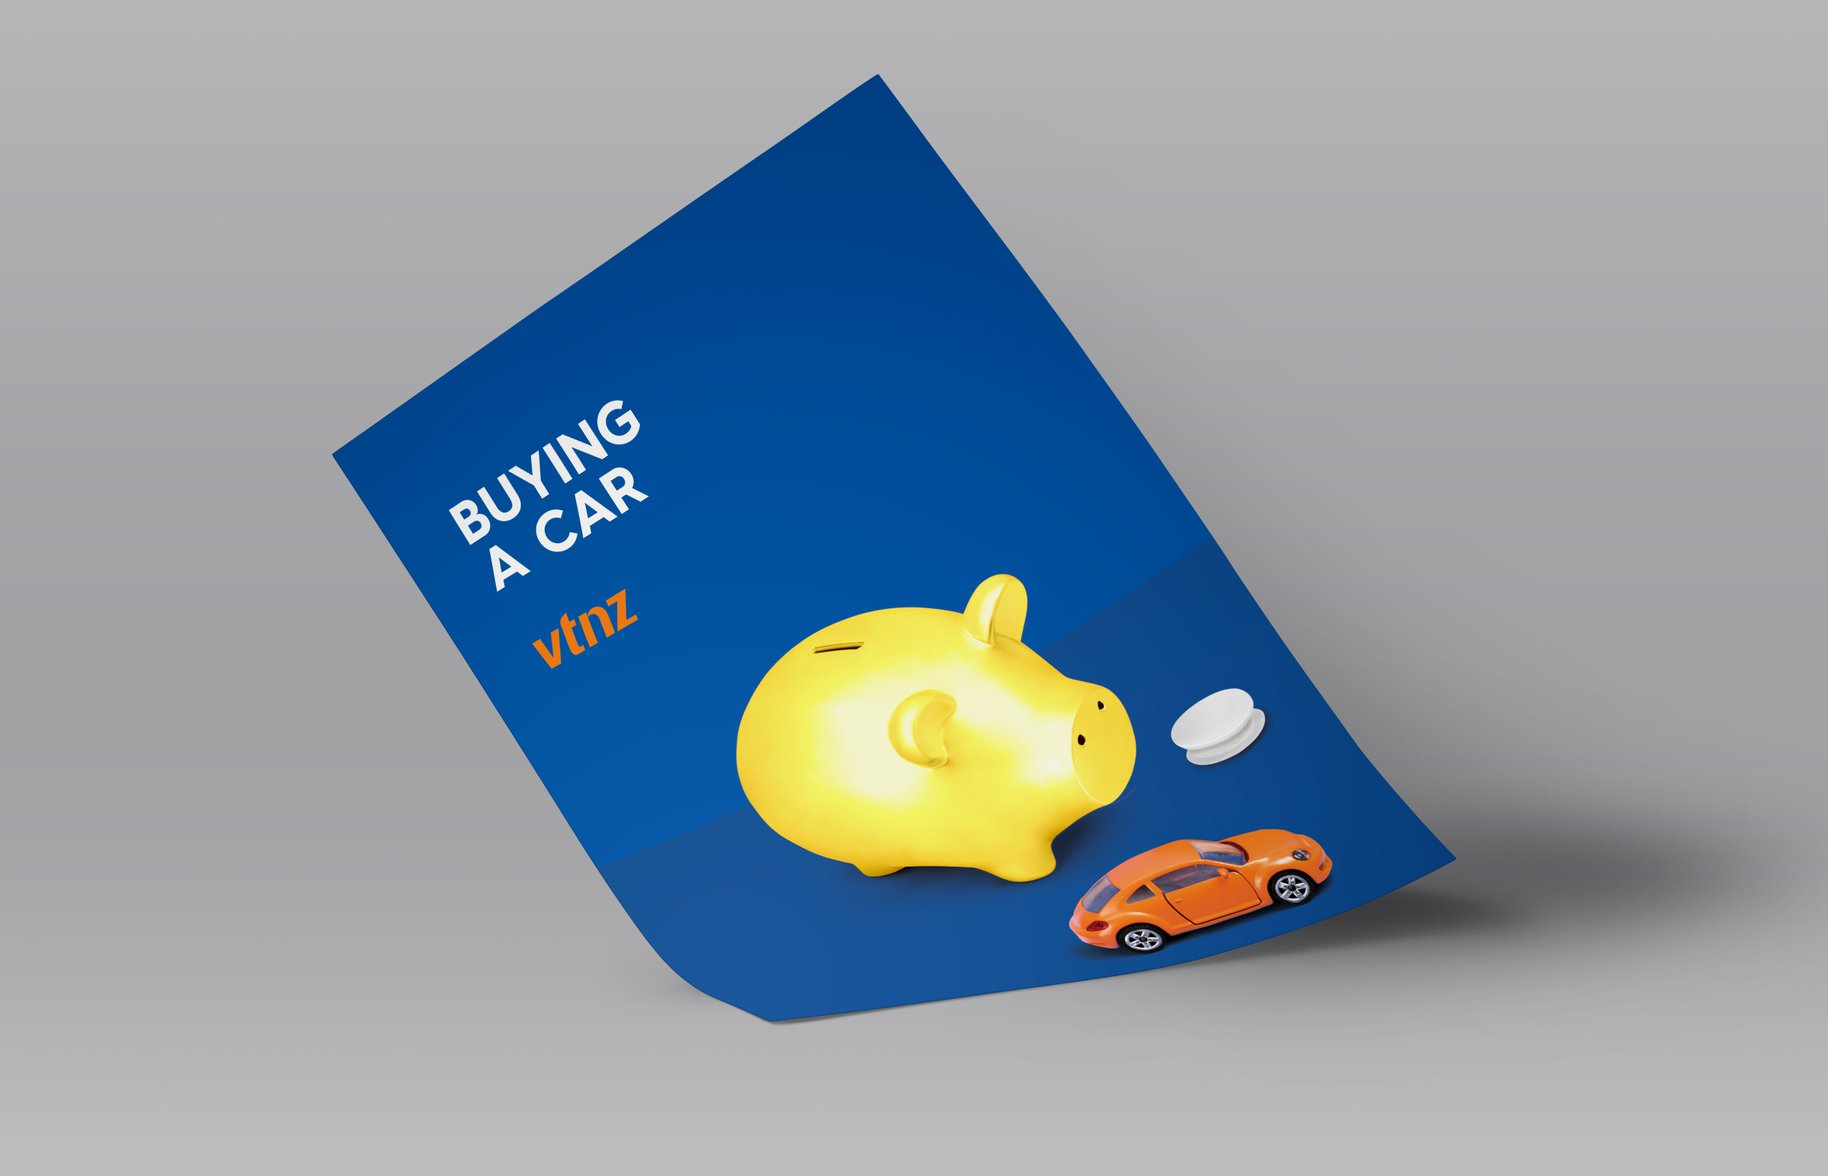 VTNZ 'Buying a car' Poster